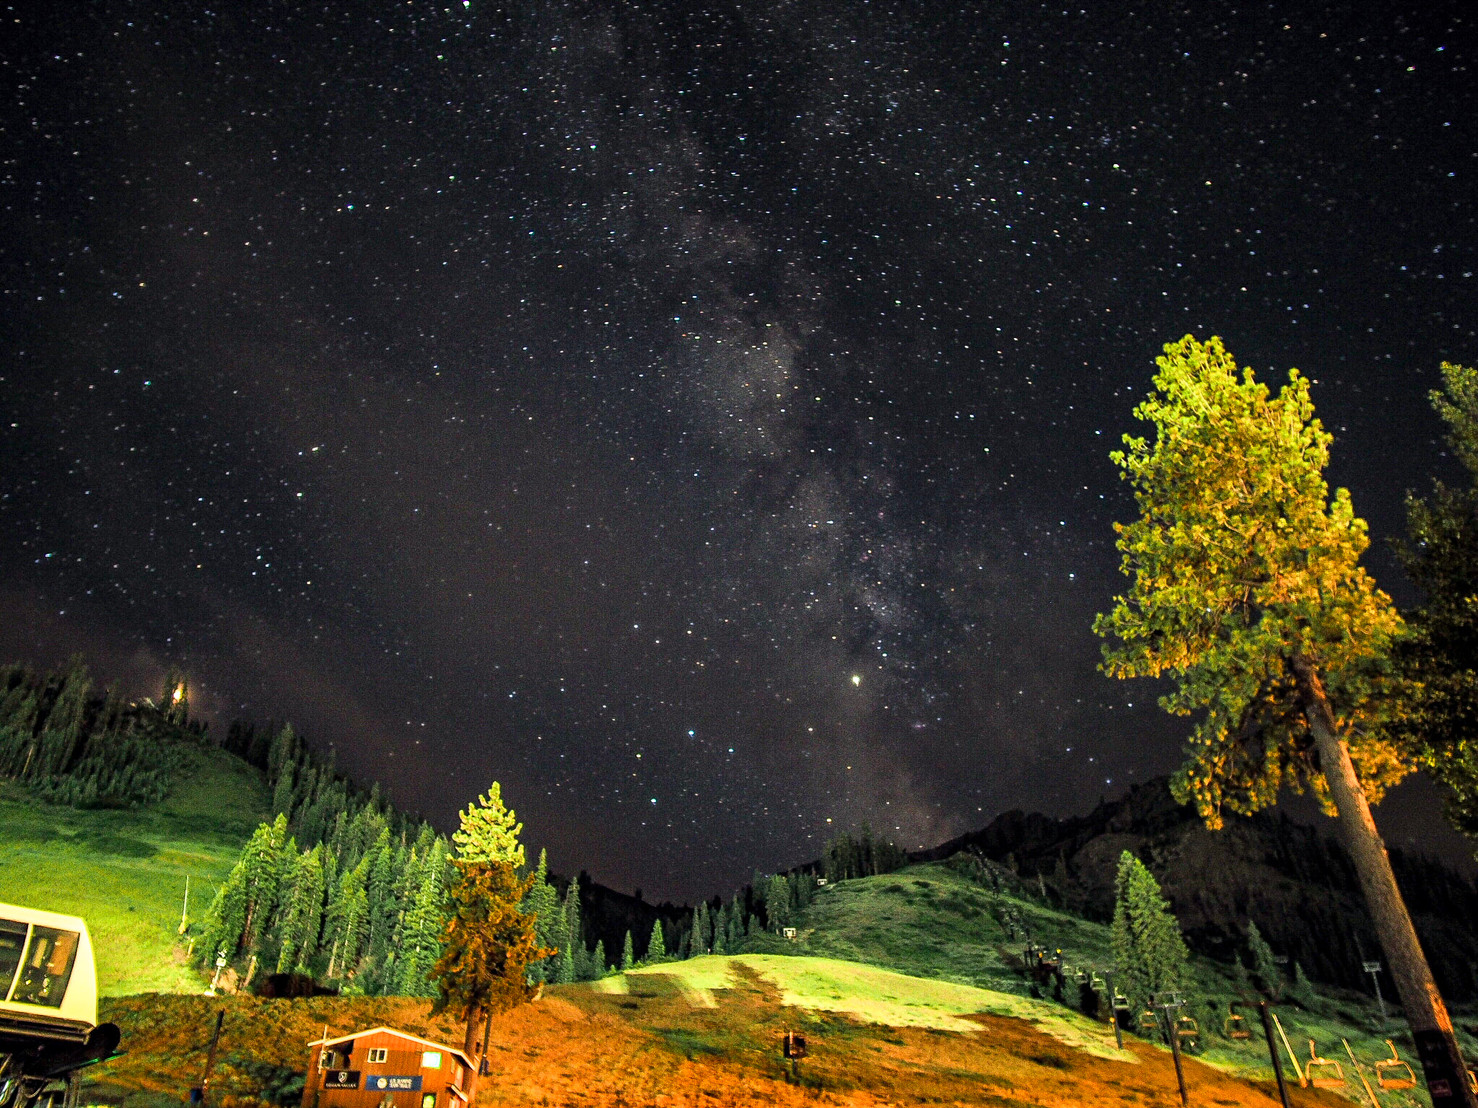 Milky Way over Squaw Valley